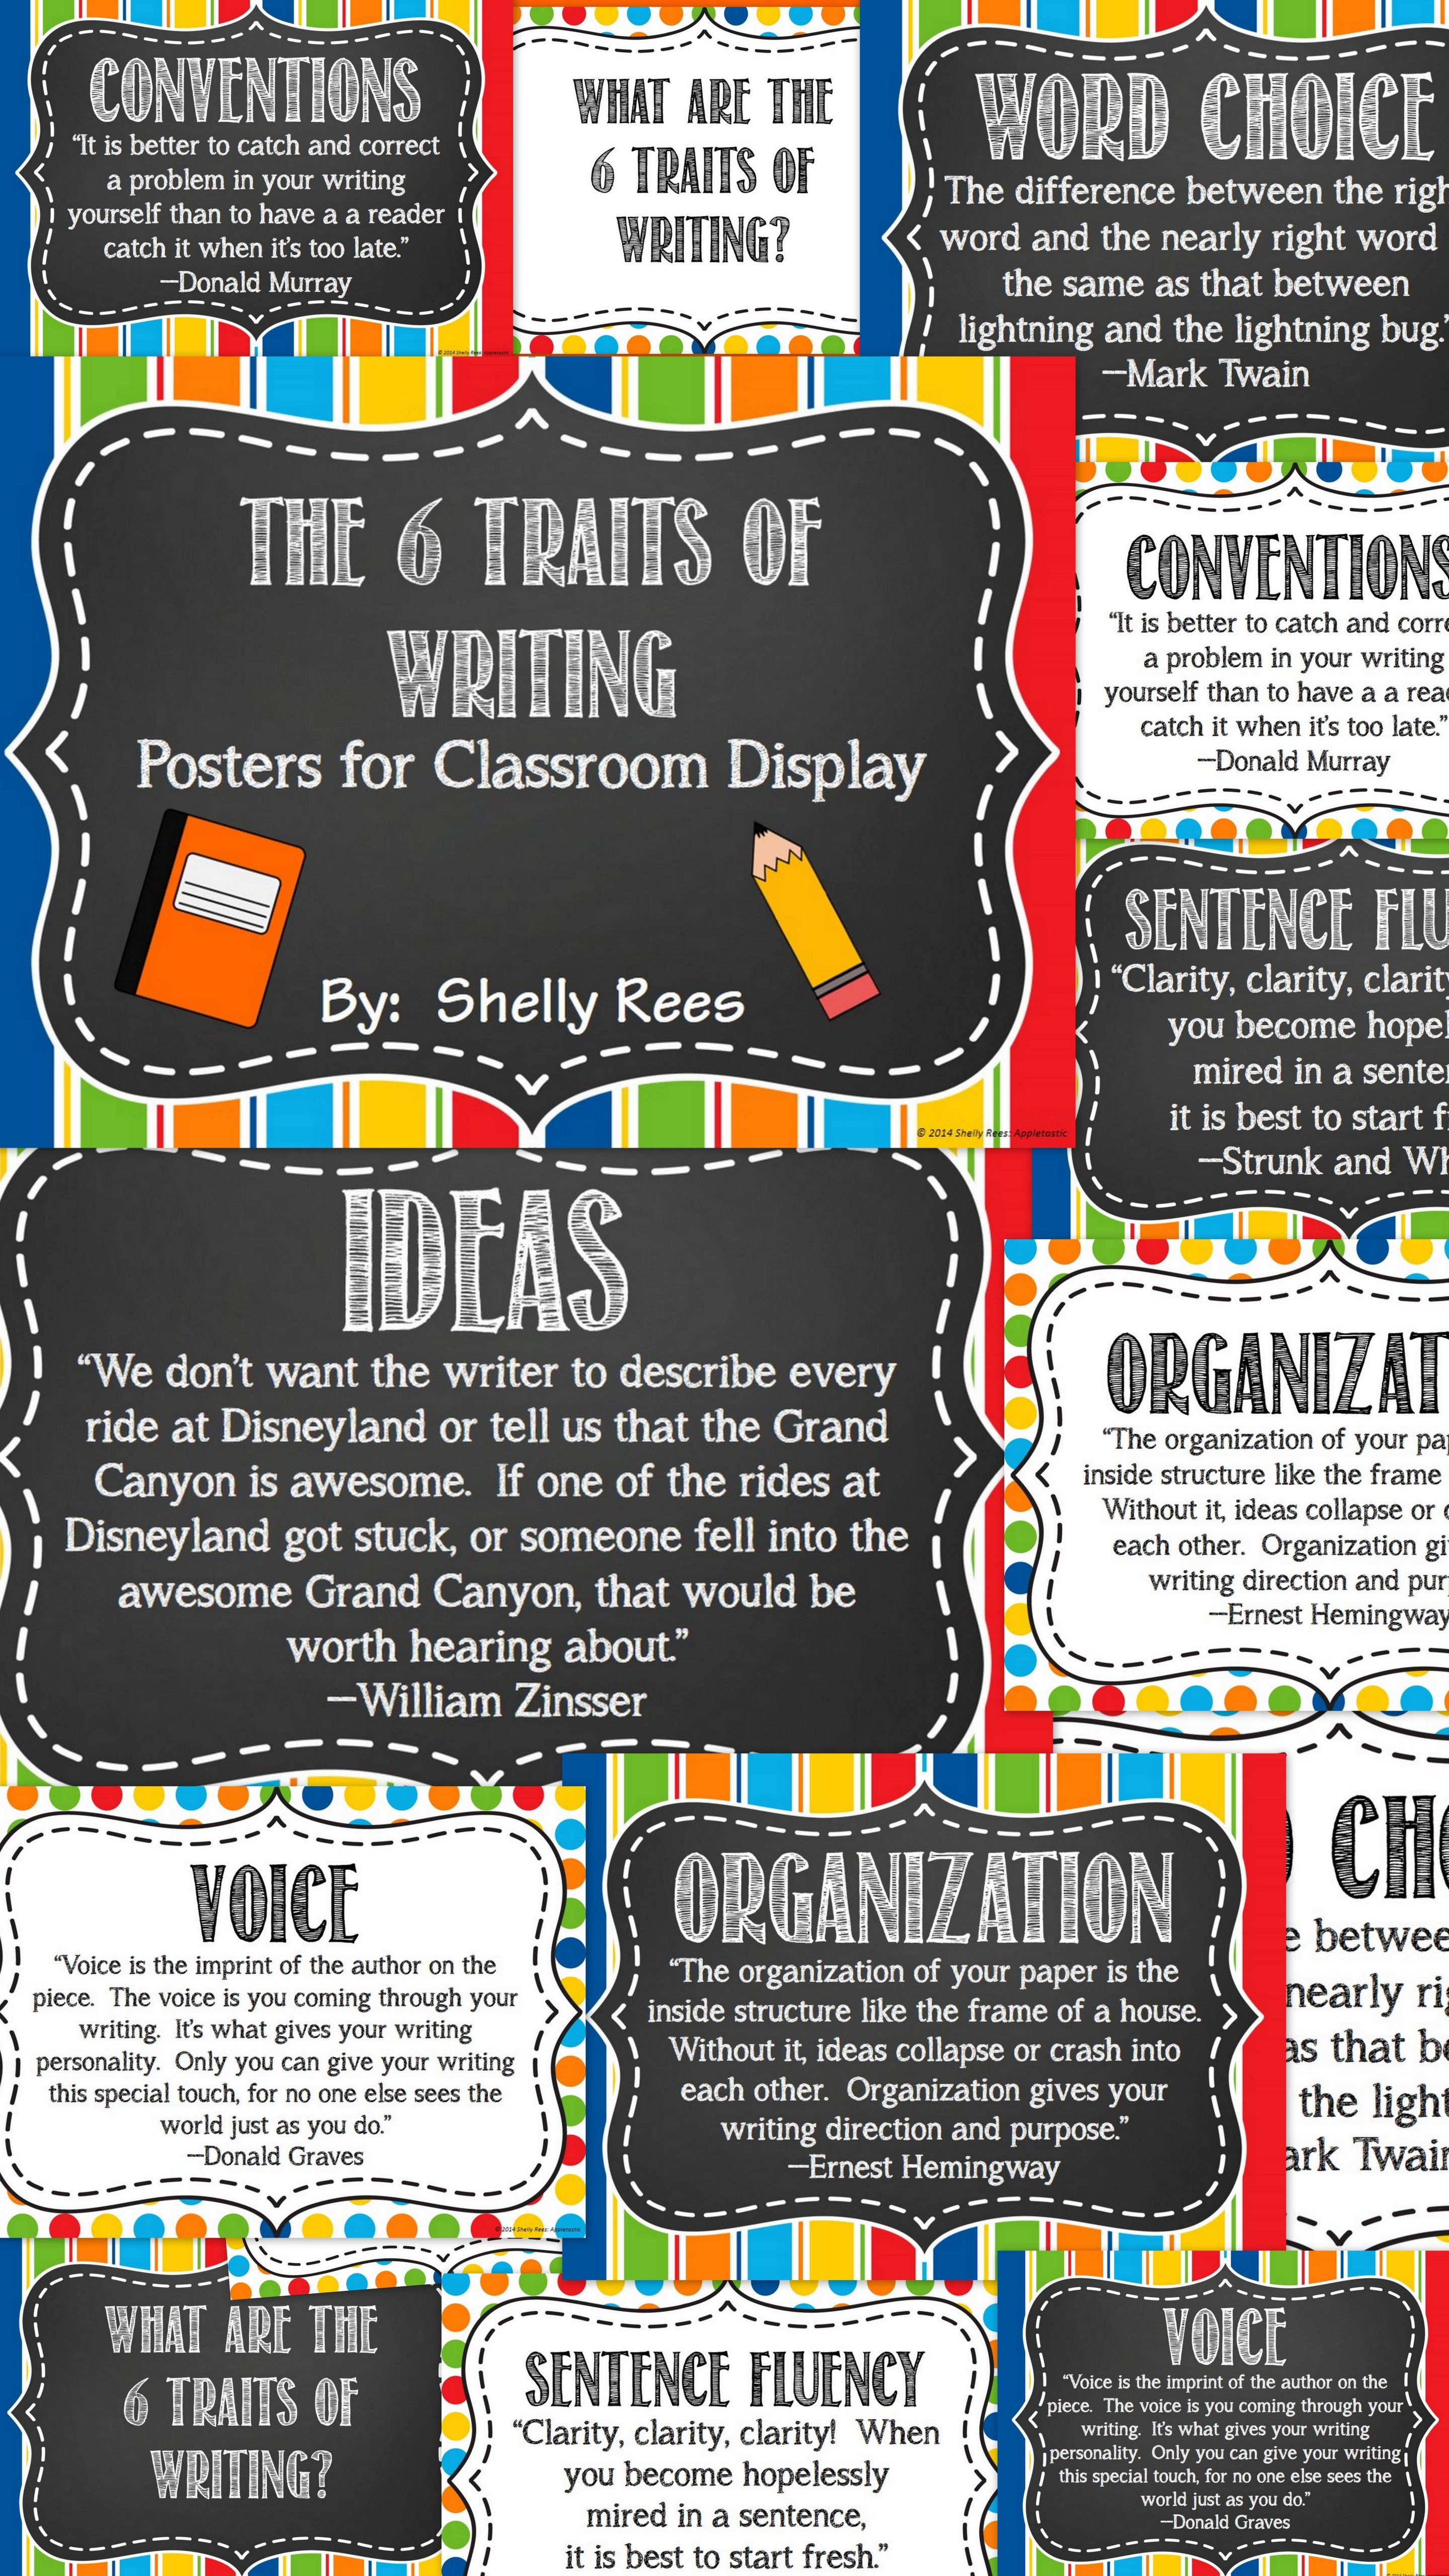 Pin By Molly Vass On School Is Cool 6 Traits Of Writing Teaching Writing Writing Posters [ 5120 x 2880 Pixel ]